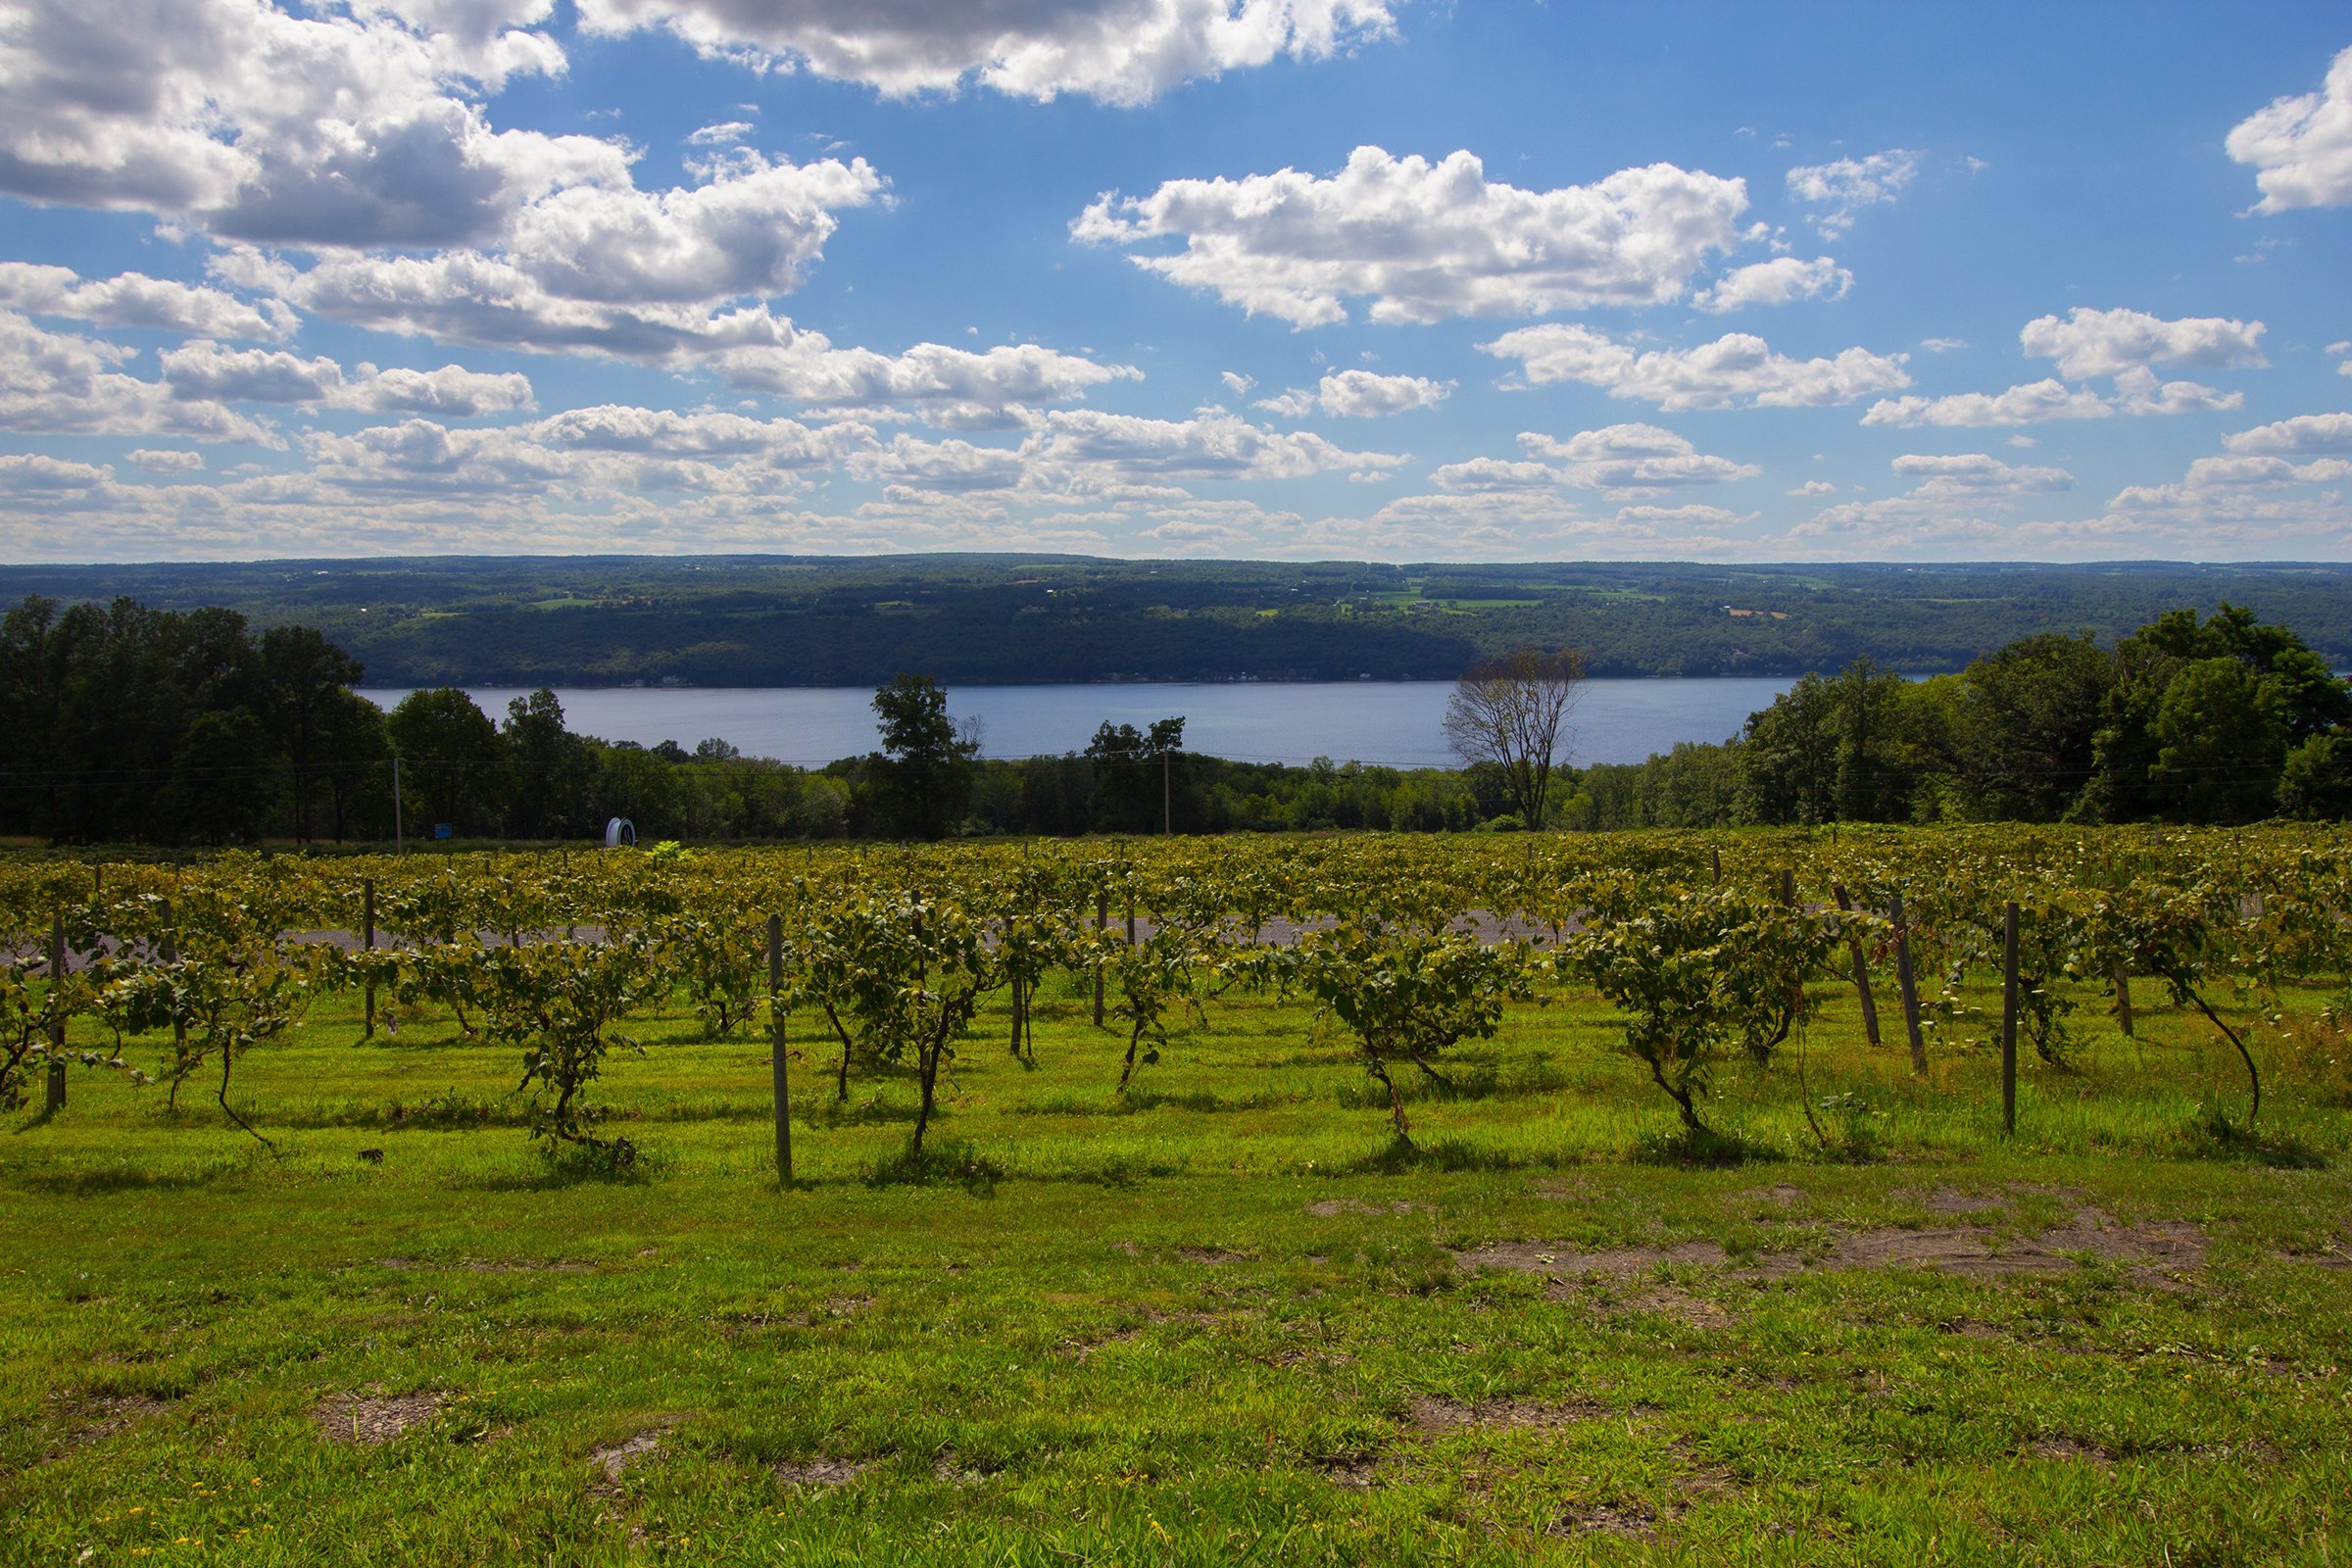 Vineyard & Seneca Lake, The Finger Lakes Region, New York